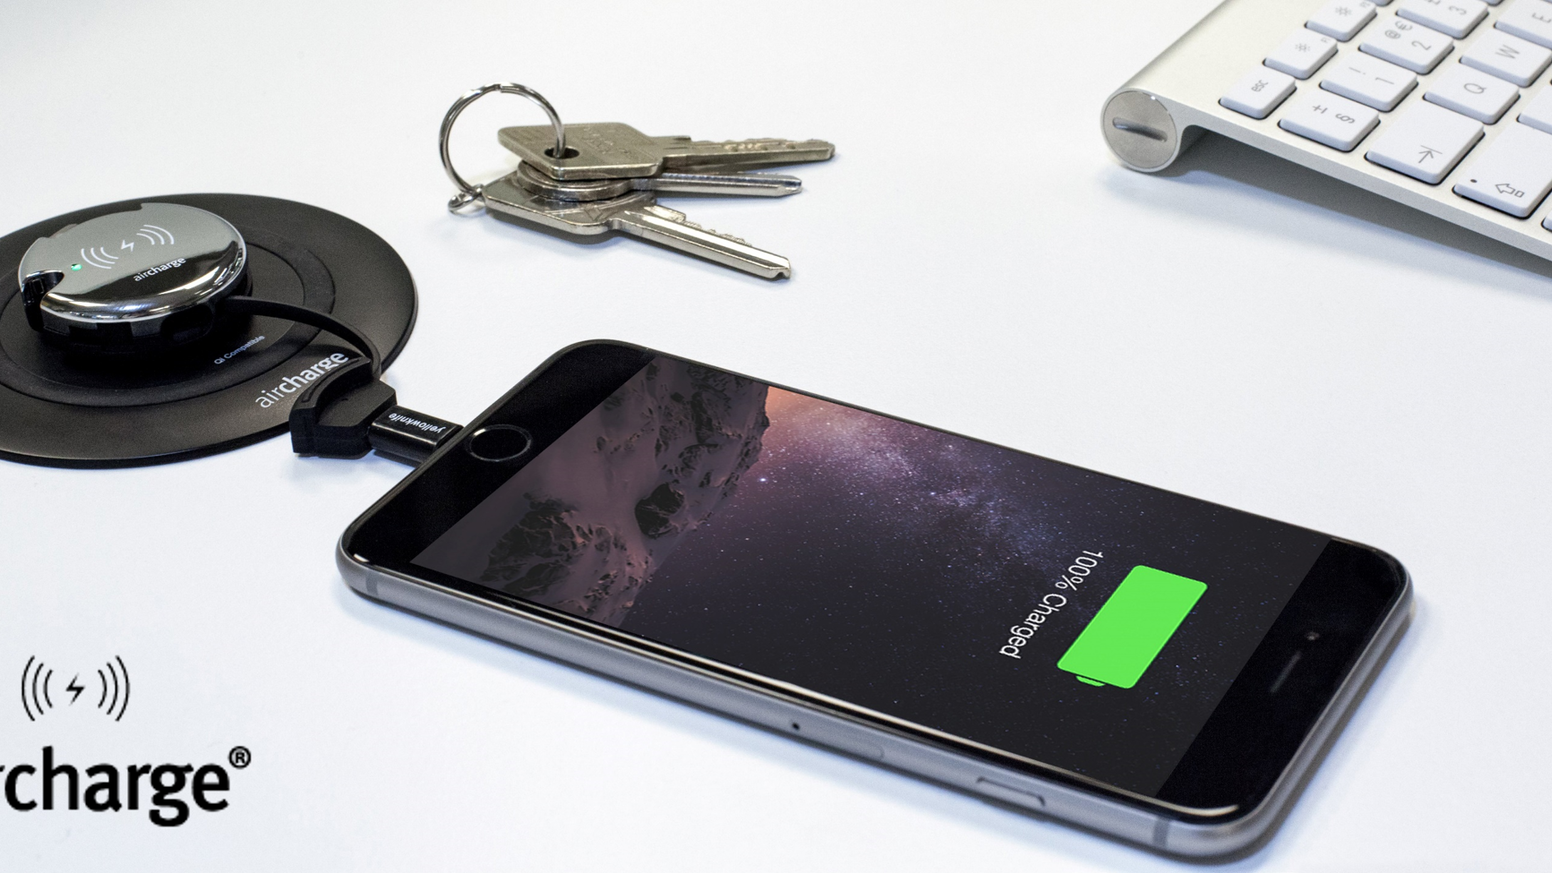 With the all-new portable and versatile Keyring you can wirelessly charge any smartphone and portable tech gadget, at home or on the go